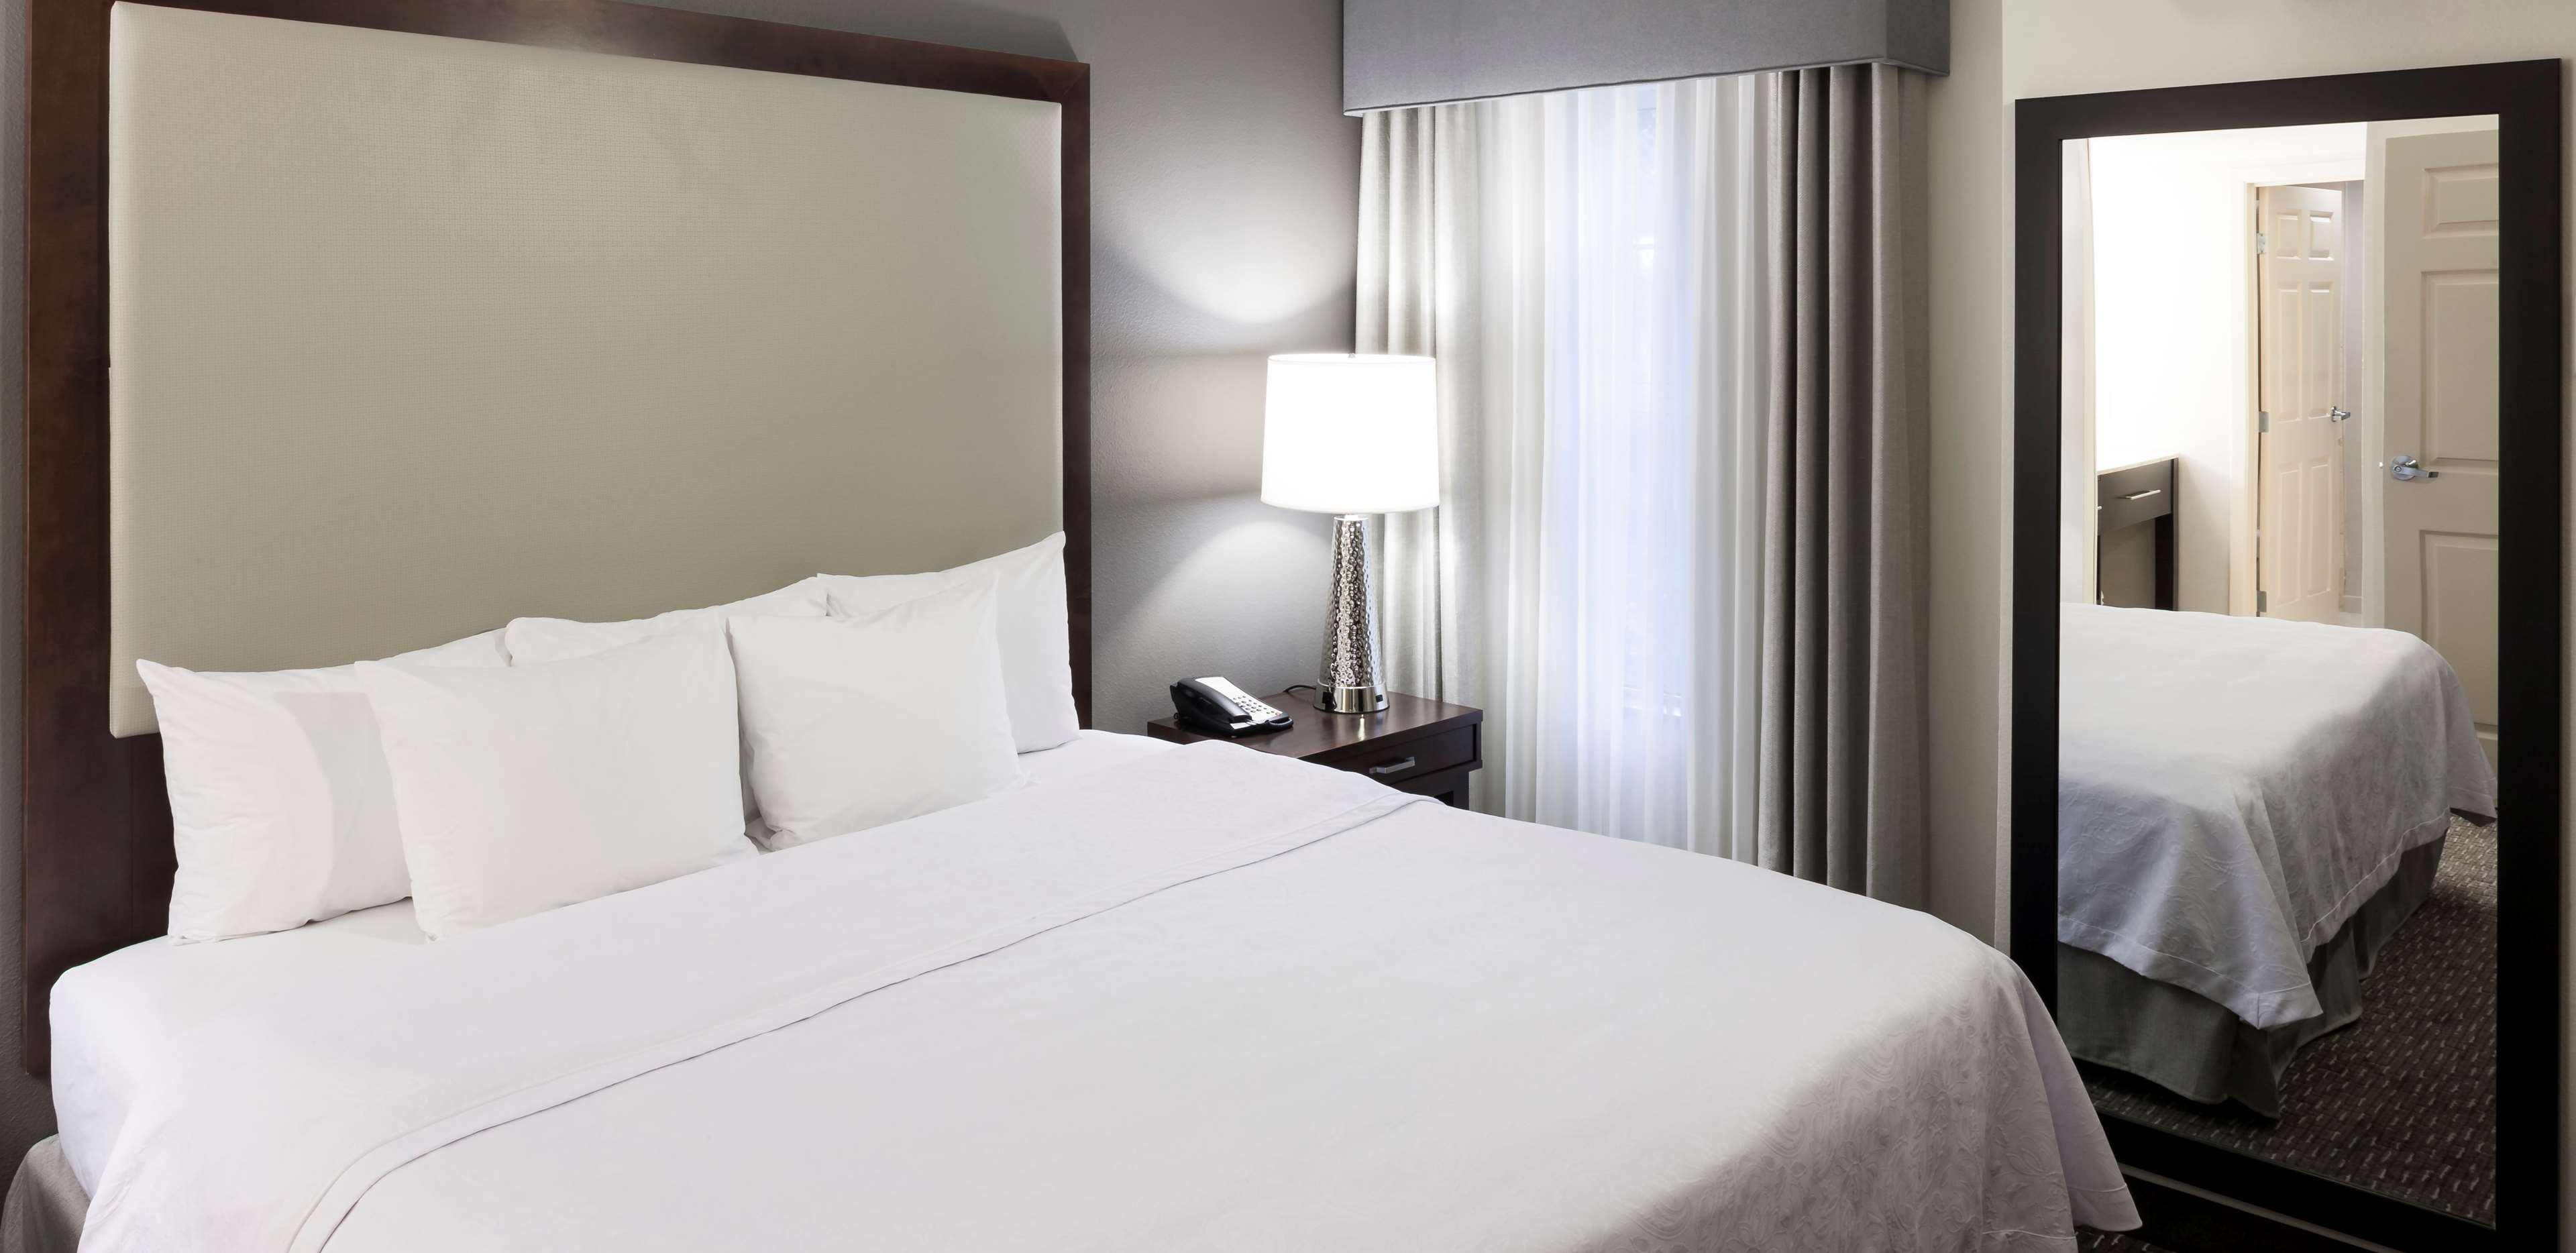 Homewood Suites by Hilton San Jose Airport-Silicon Valley image 22